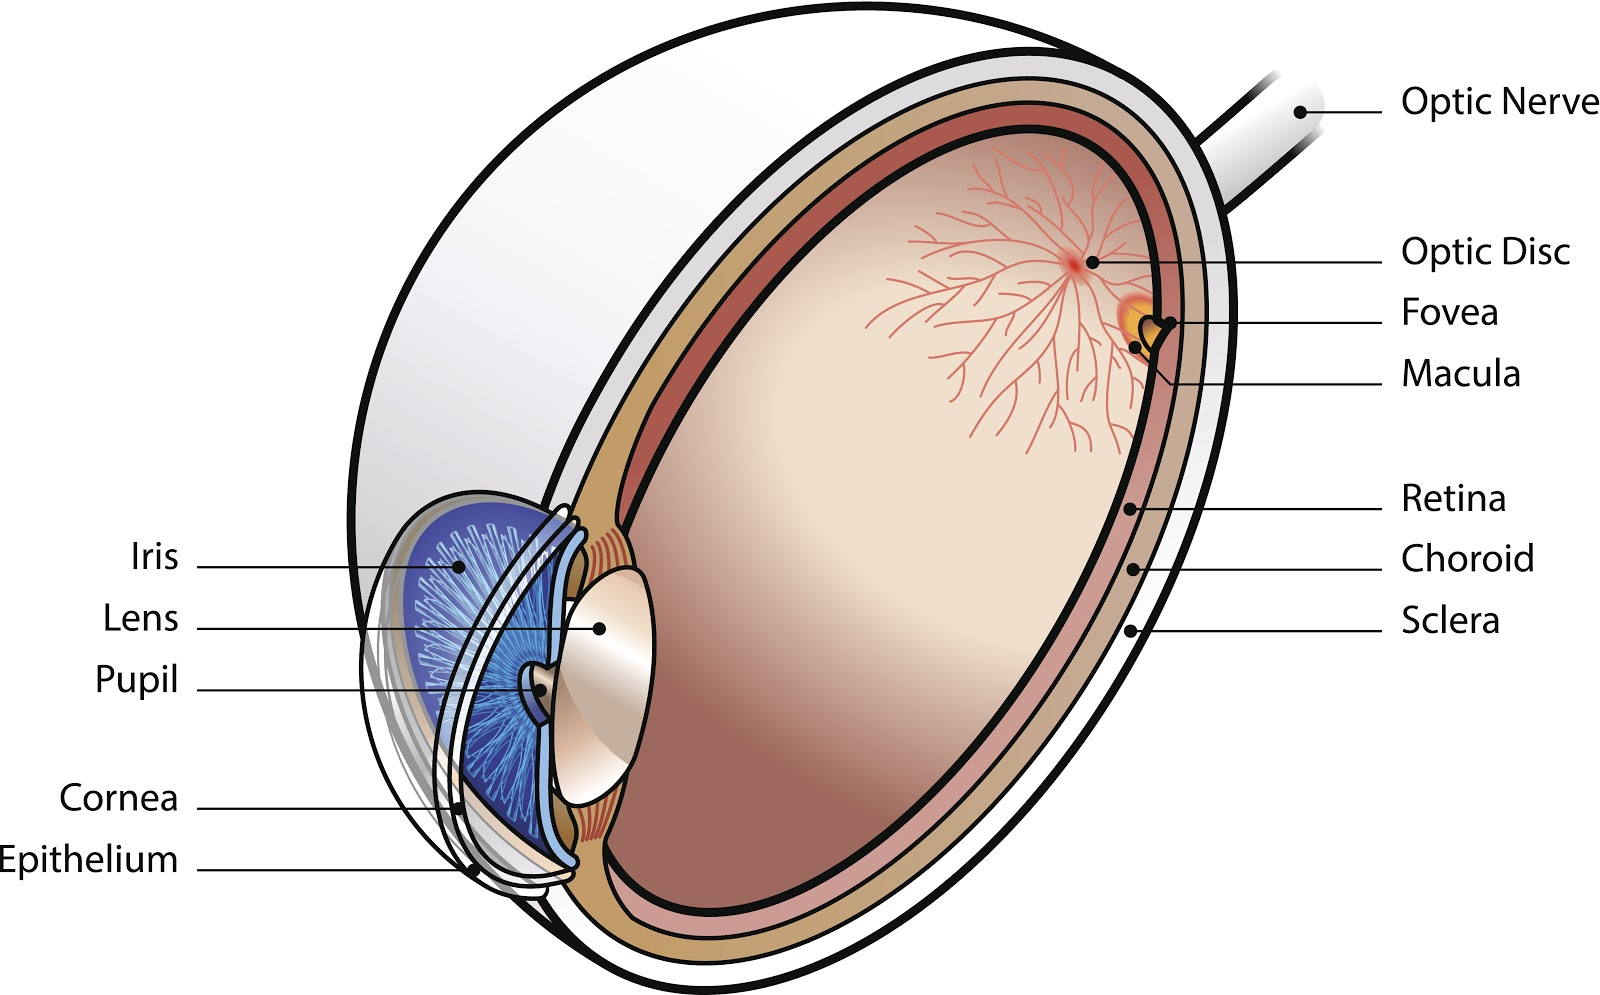 human eye anatomy identifying the macula